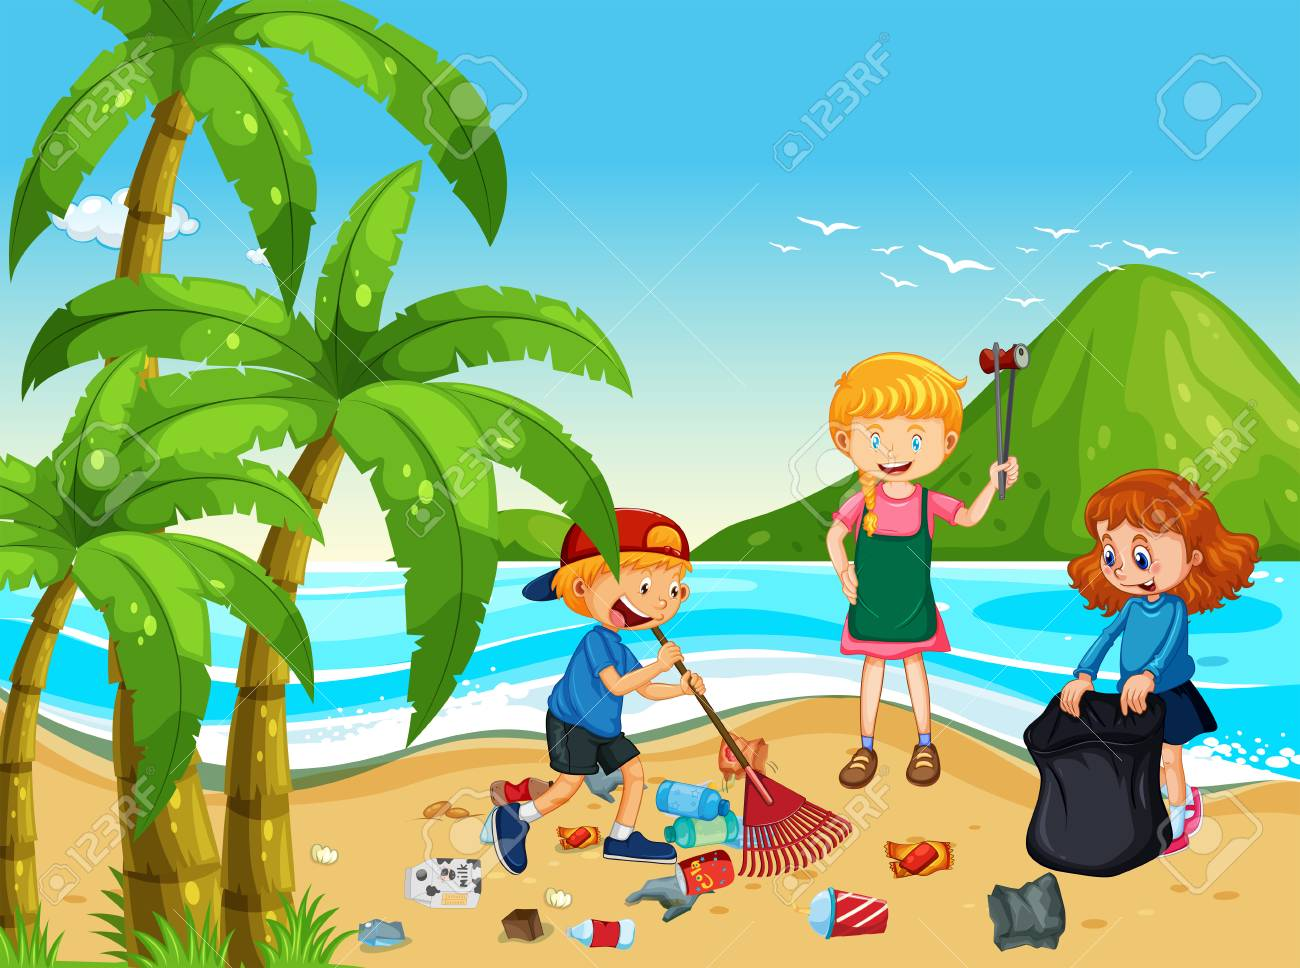 A Group of Volunteer Children Cleaning Beach illustration - 114980754